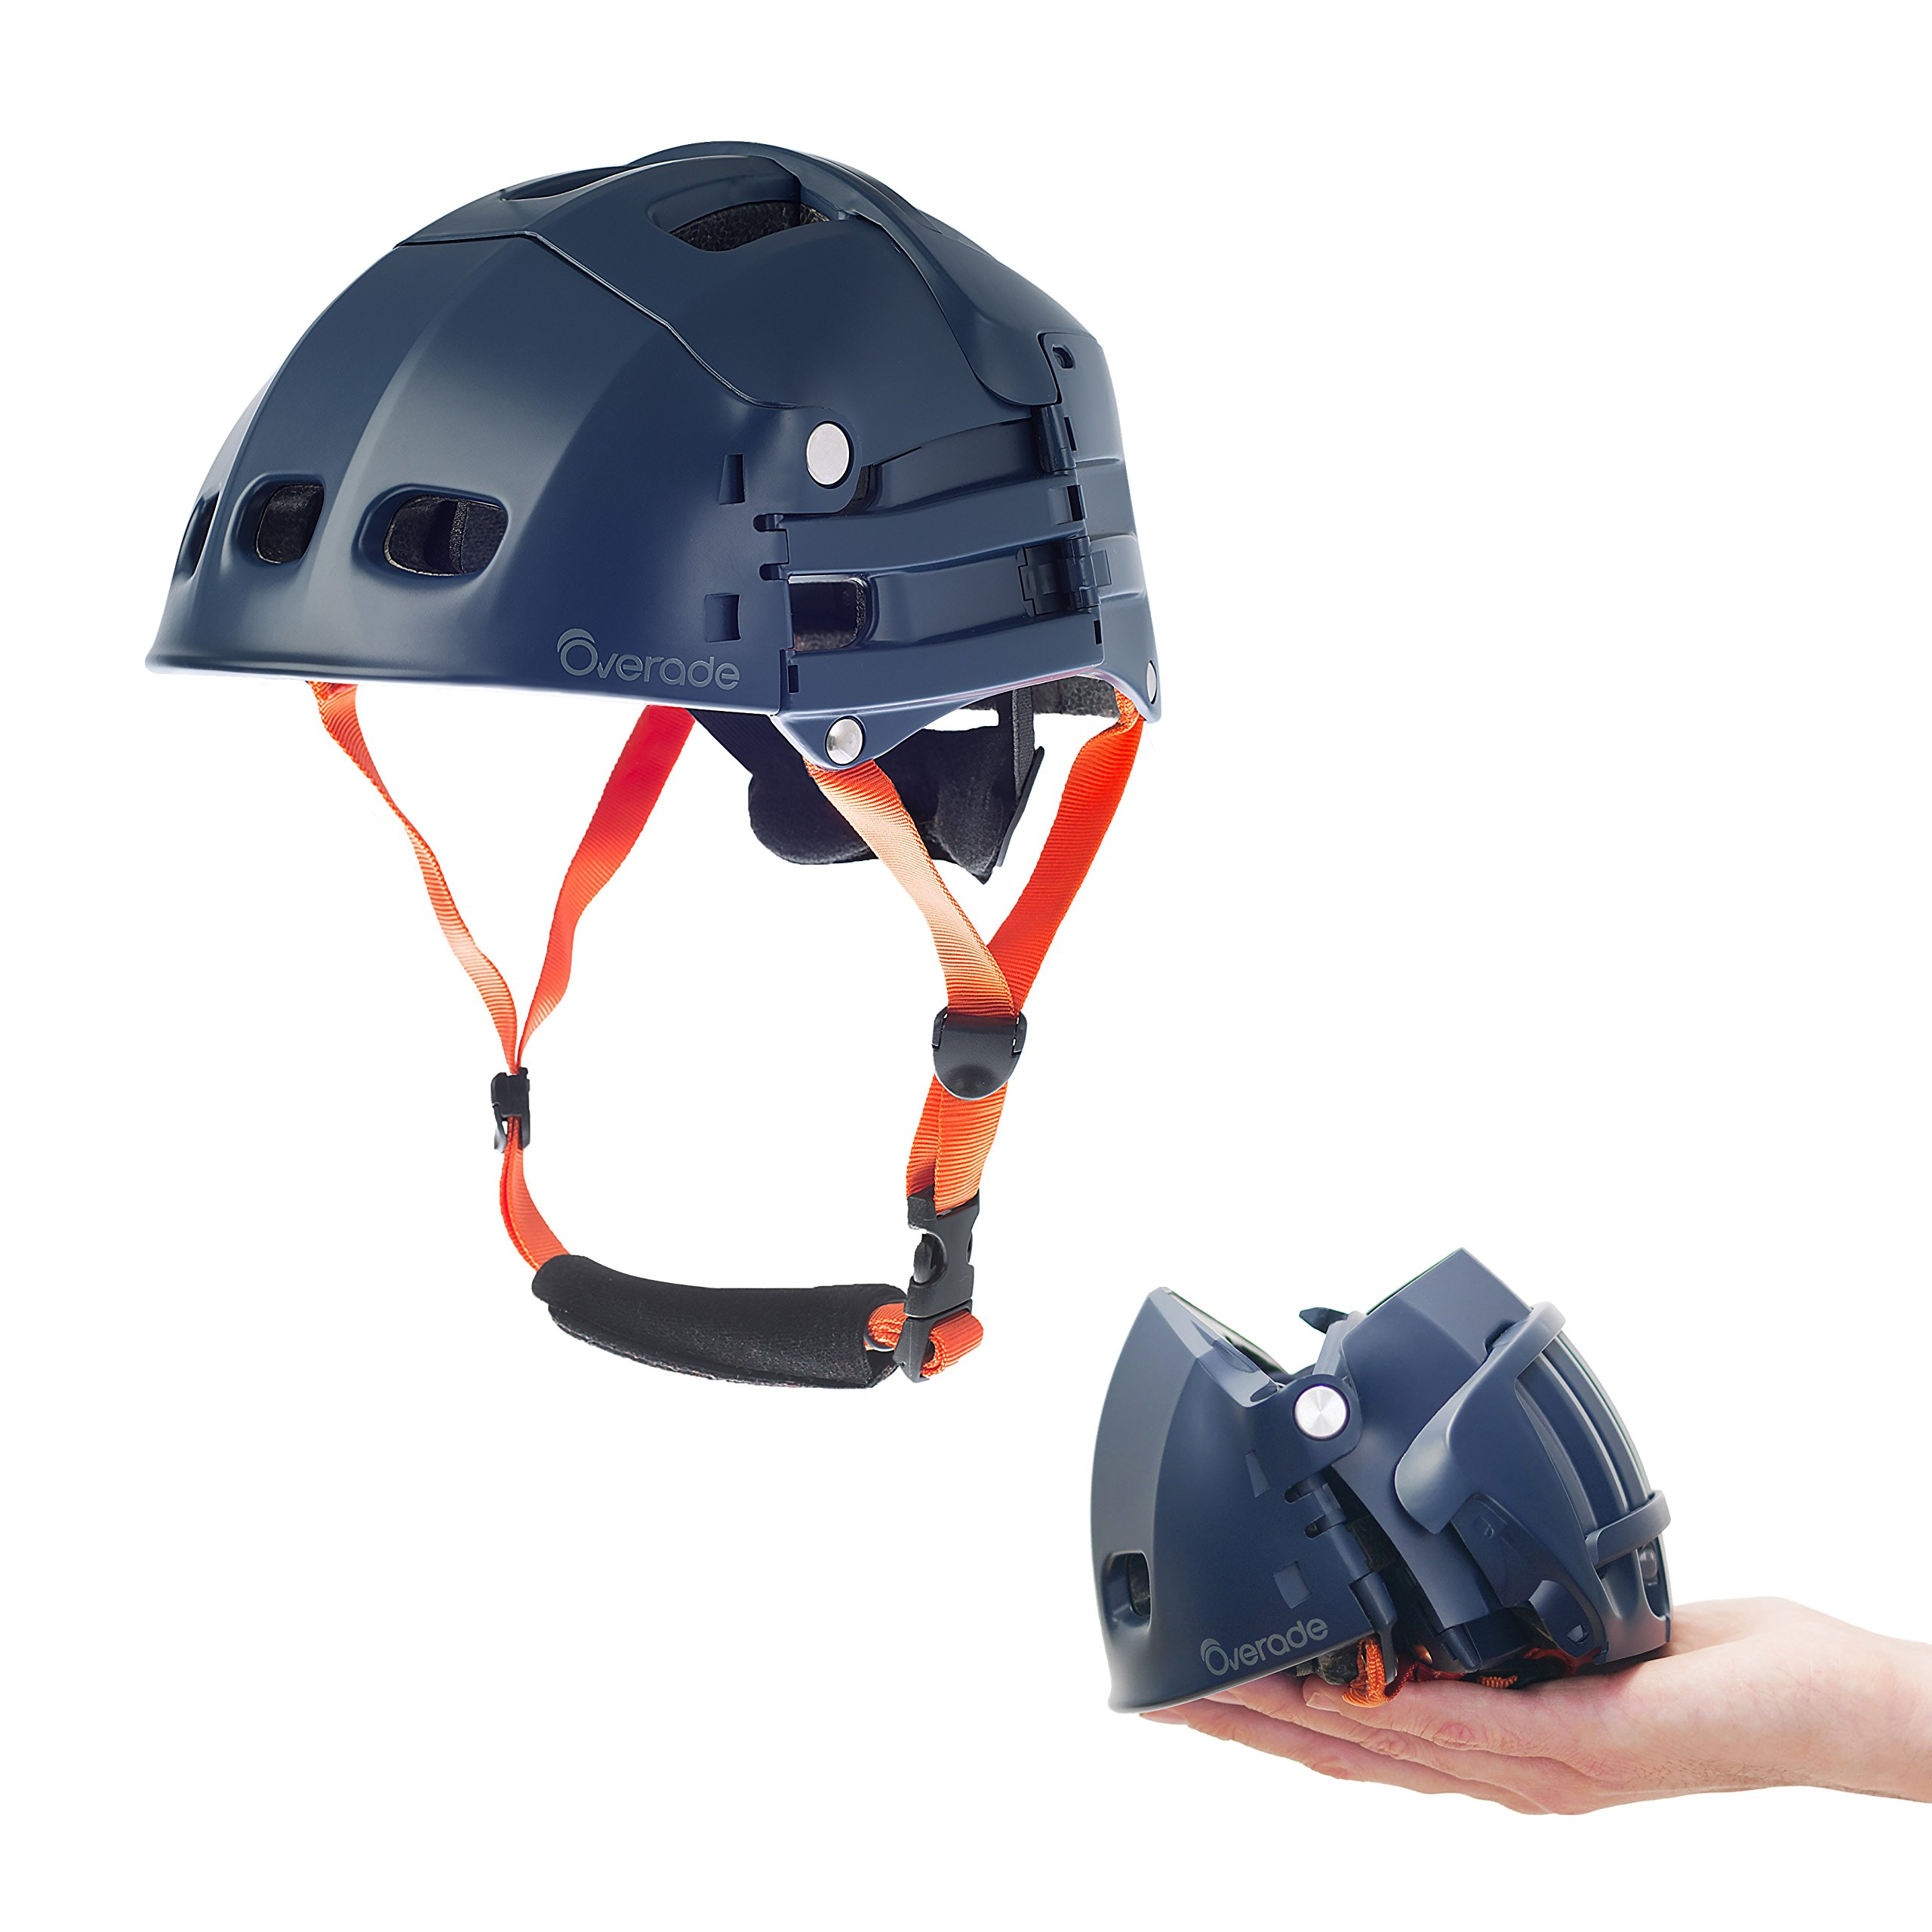 Foldable helmet Plixi Fit - for bike, kick scooter, skateboard, overboard, e-bike - CPSC standard, same protection as classic helmet - Volume divided by 3 when folded (Blue, L/XL) by Overade